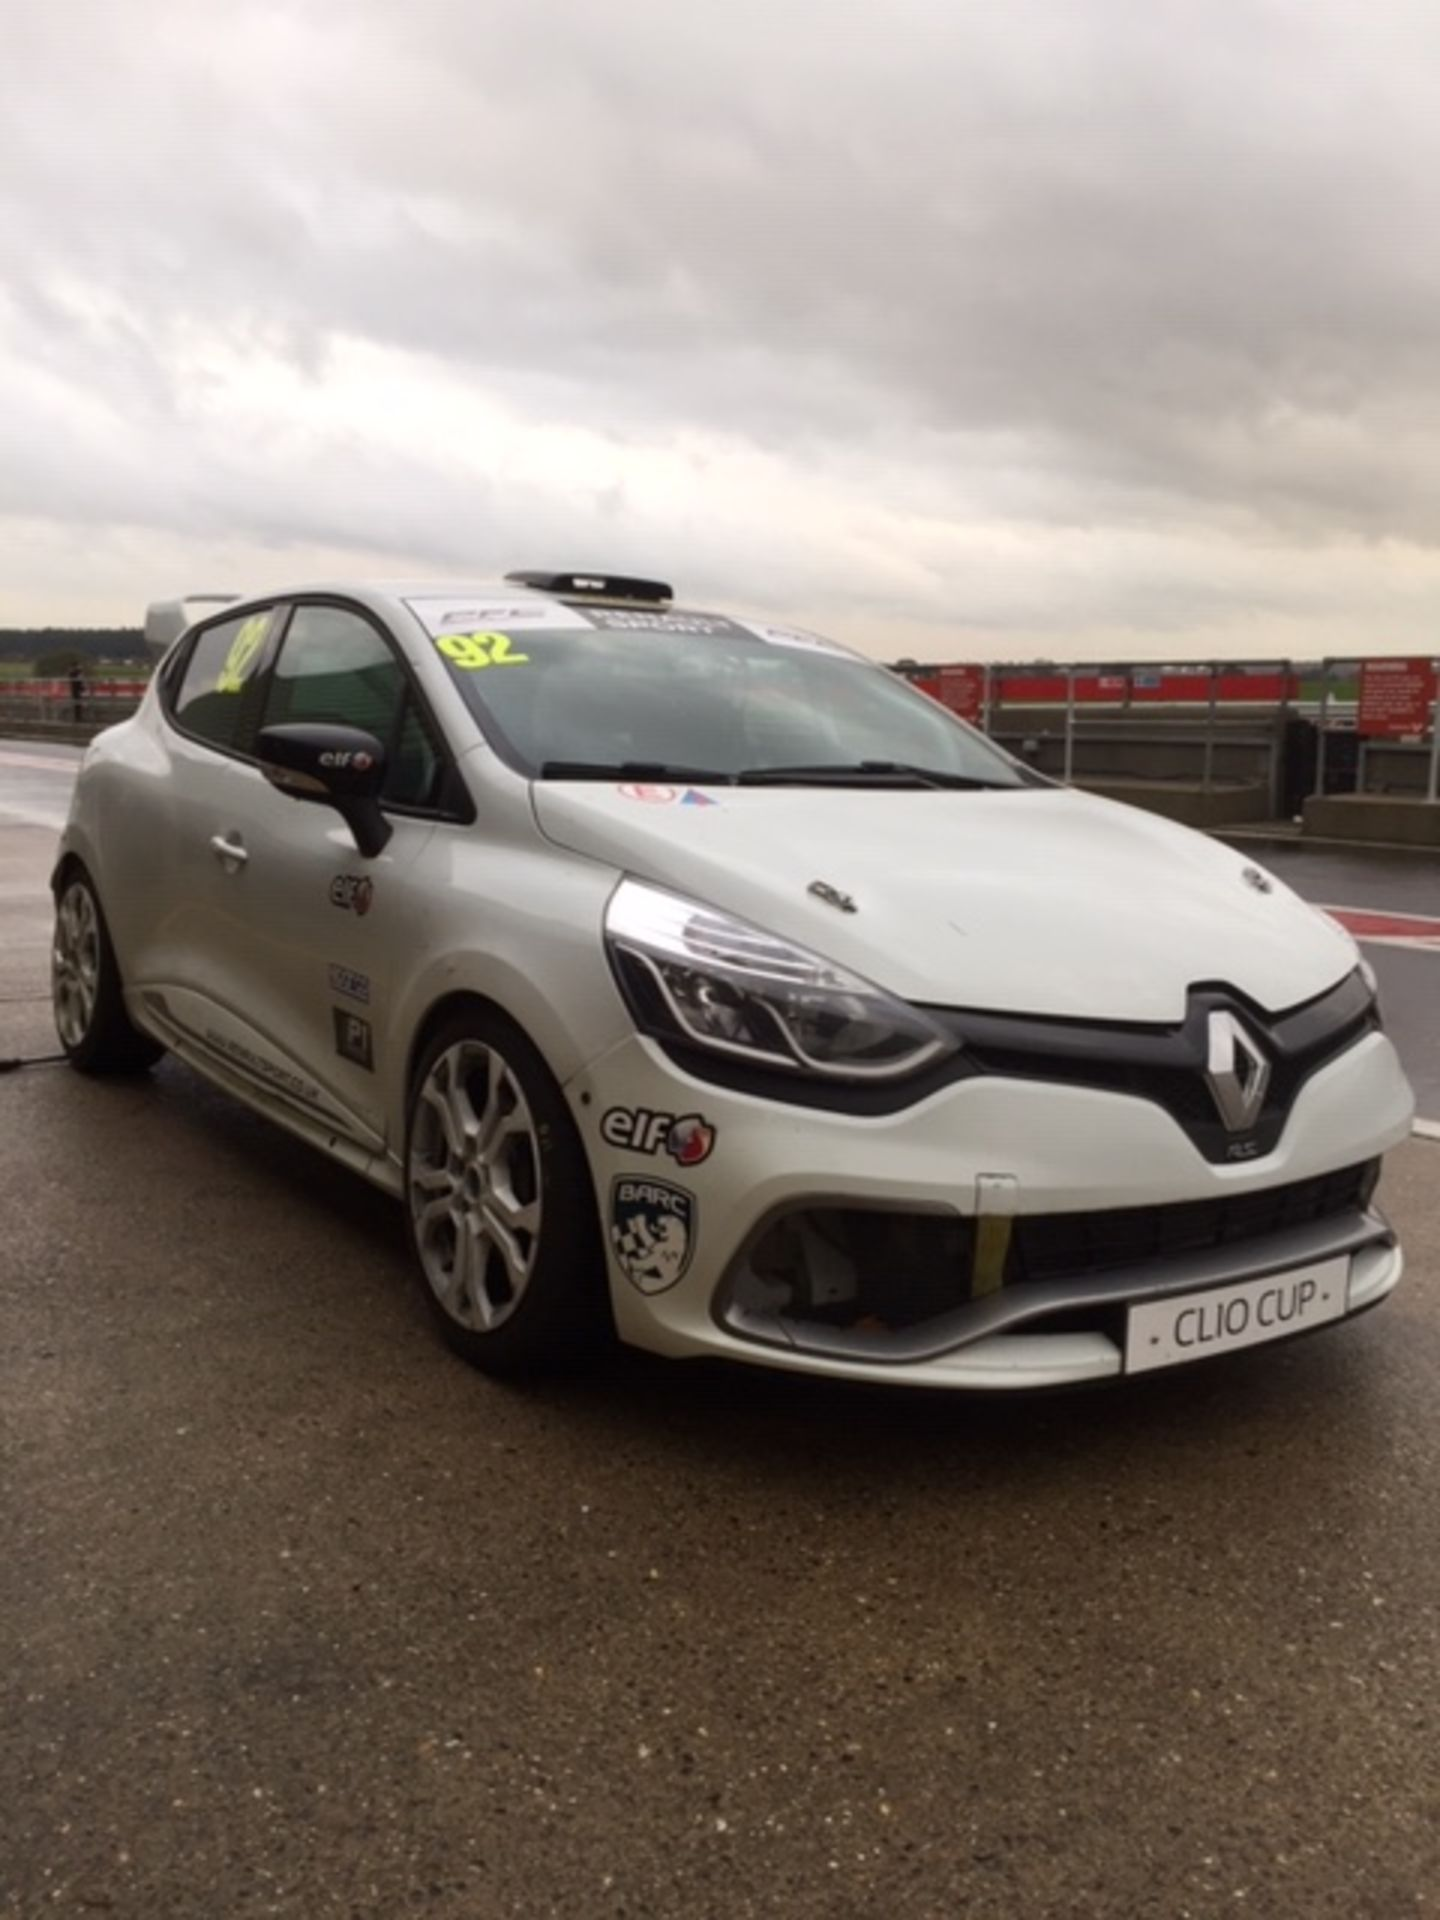 Lot 25 - CLIO CUP 2016 RACE CAR OR TRACK CAR